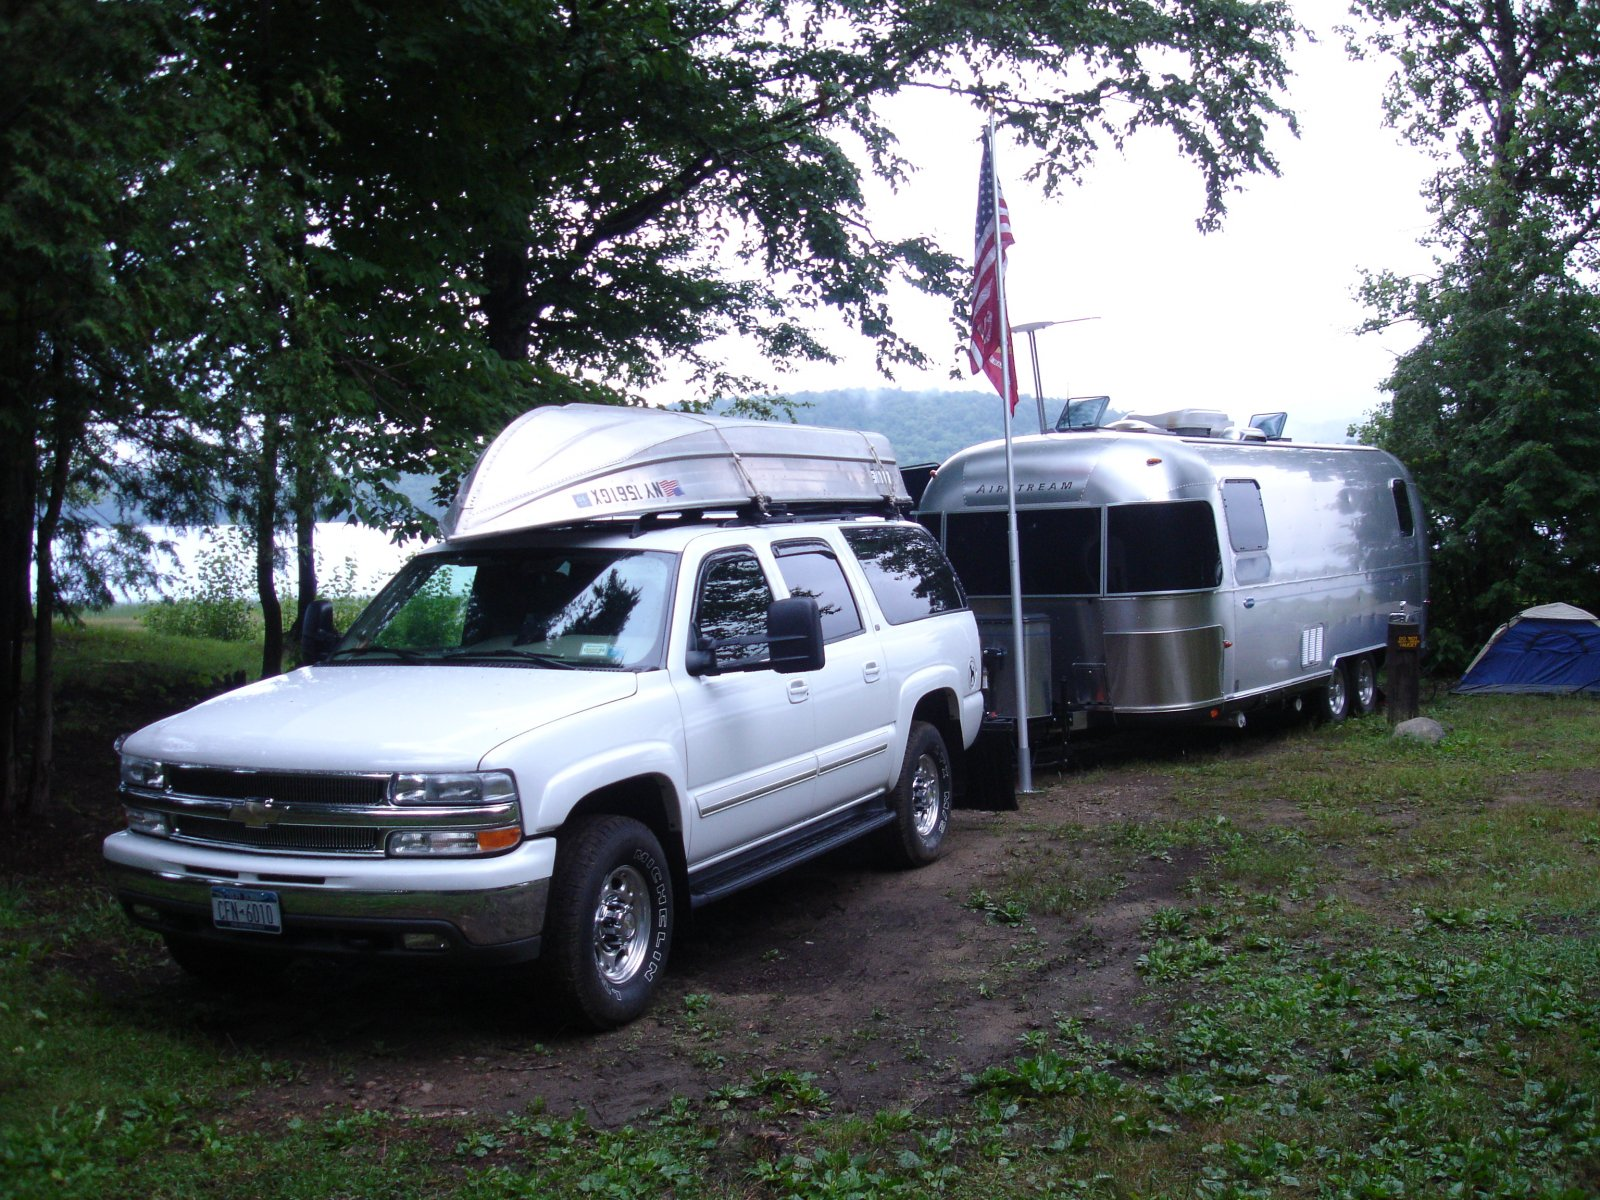 Click image for larger version  Name:PISECO LAKE CAMPING JULY 2008 031.jpg Views:61 Size:473.4 KB ID:75479